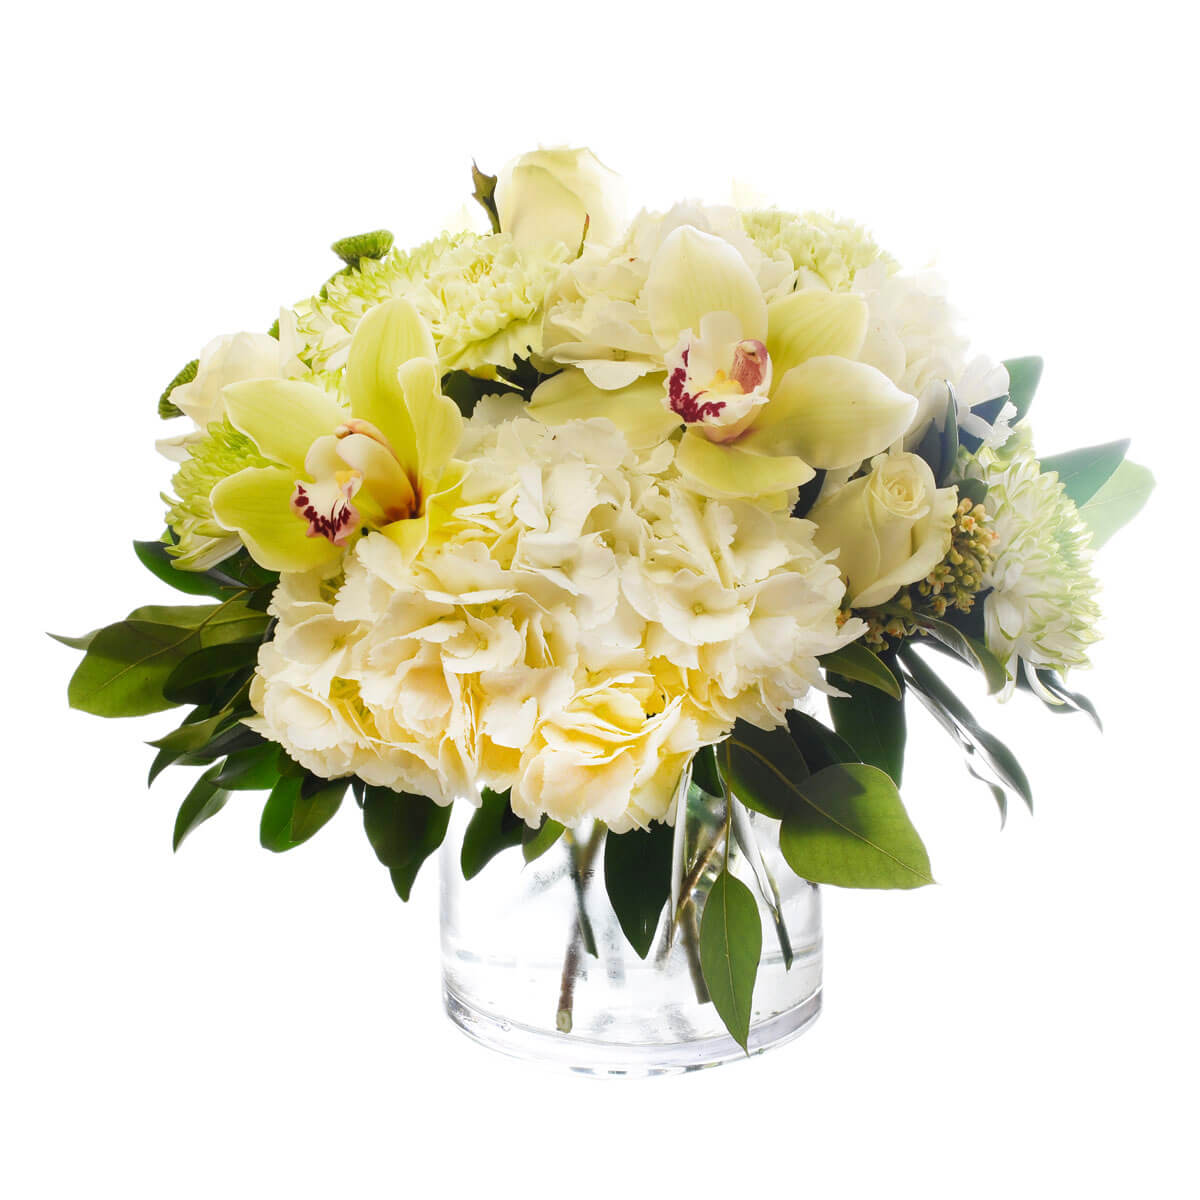 Vancouver flower delivery from Adele Rae Florist